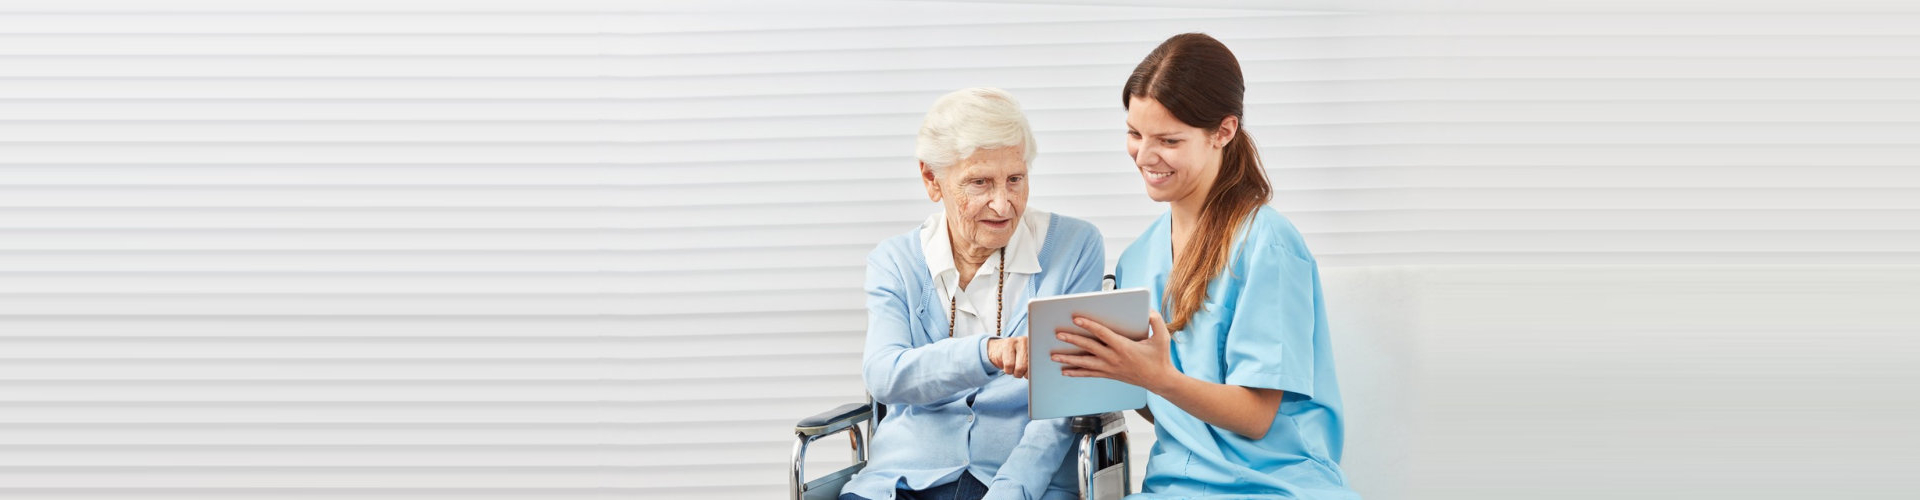 caregiver helping an elderly lady with her ipad